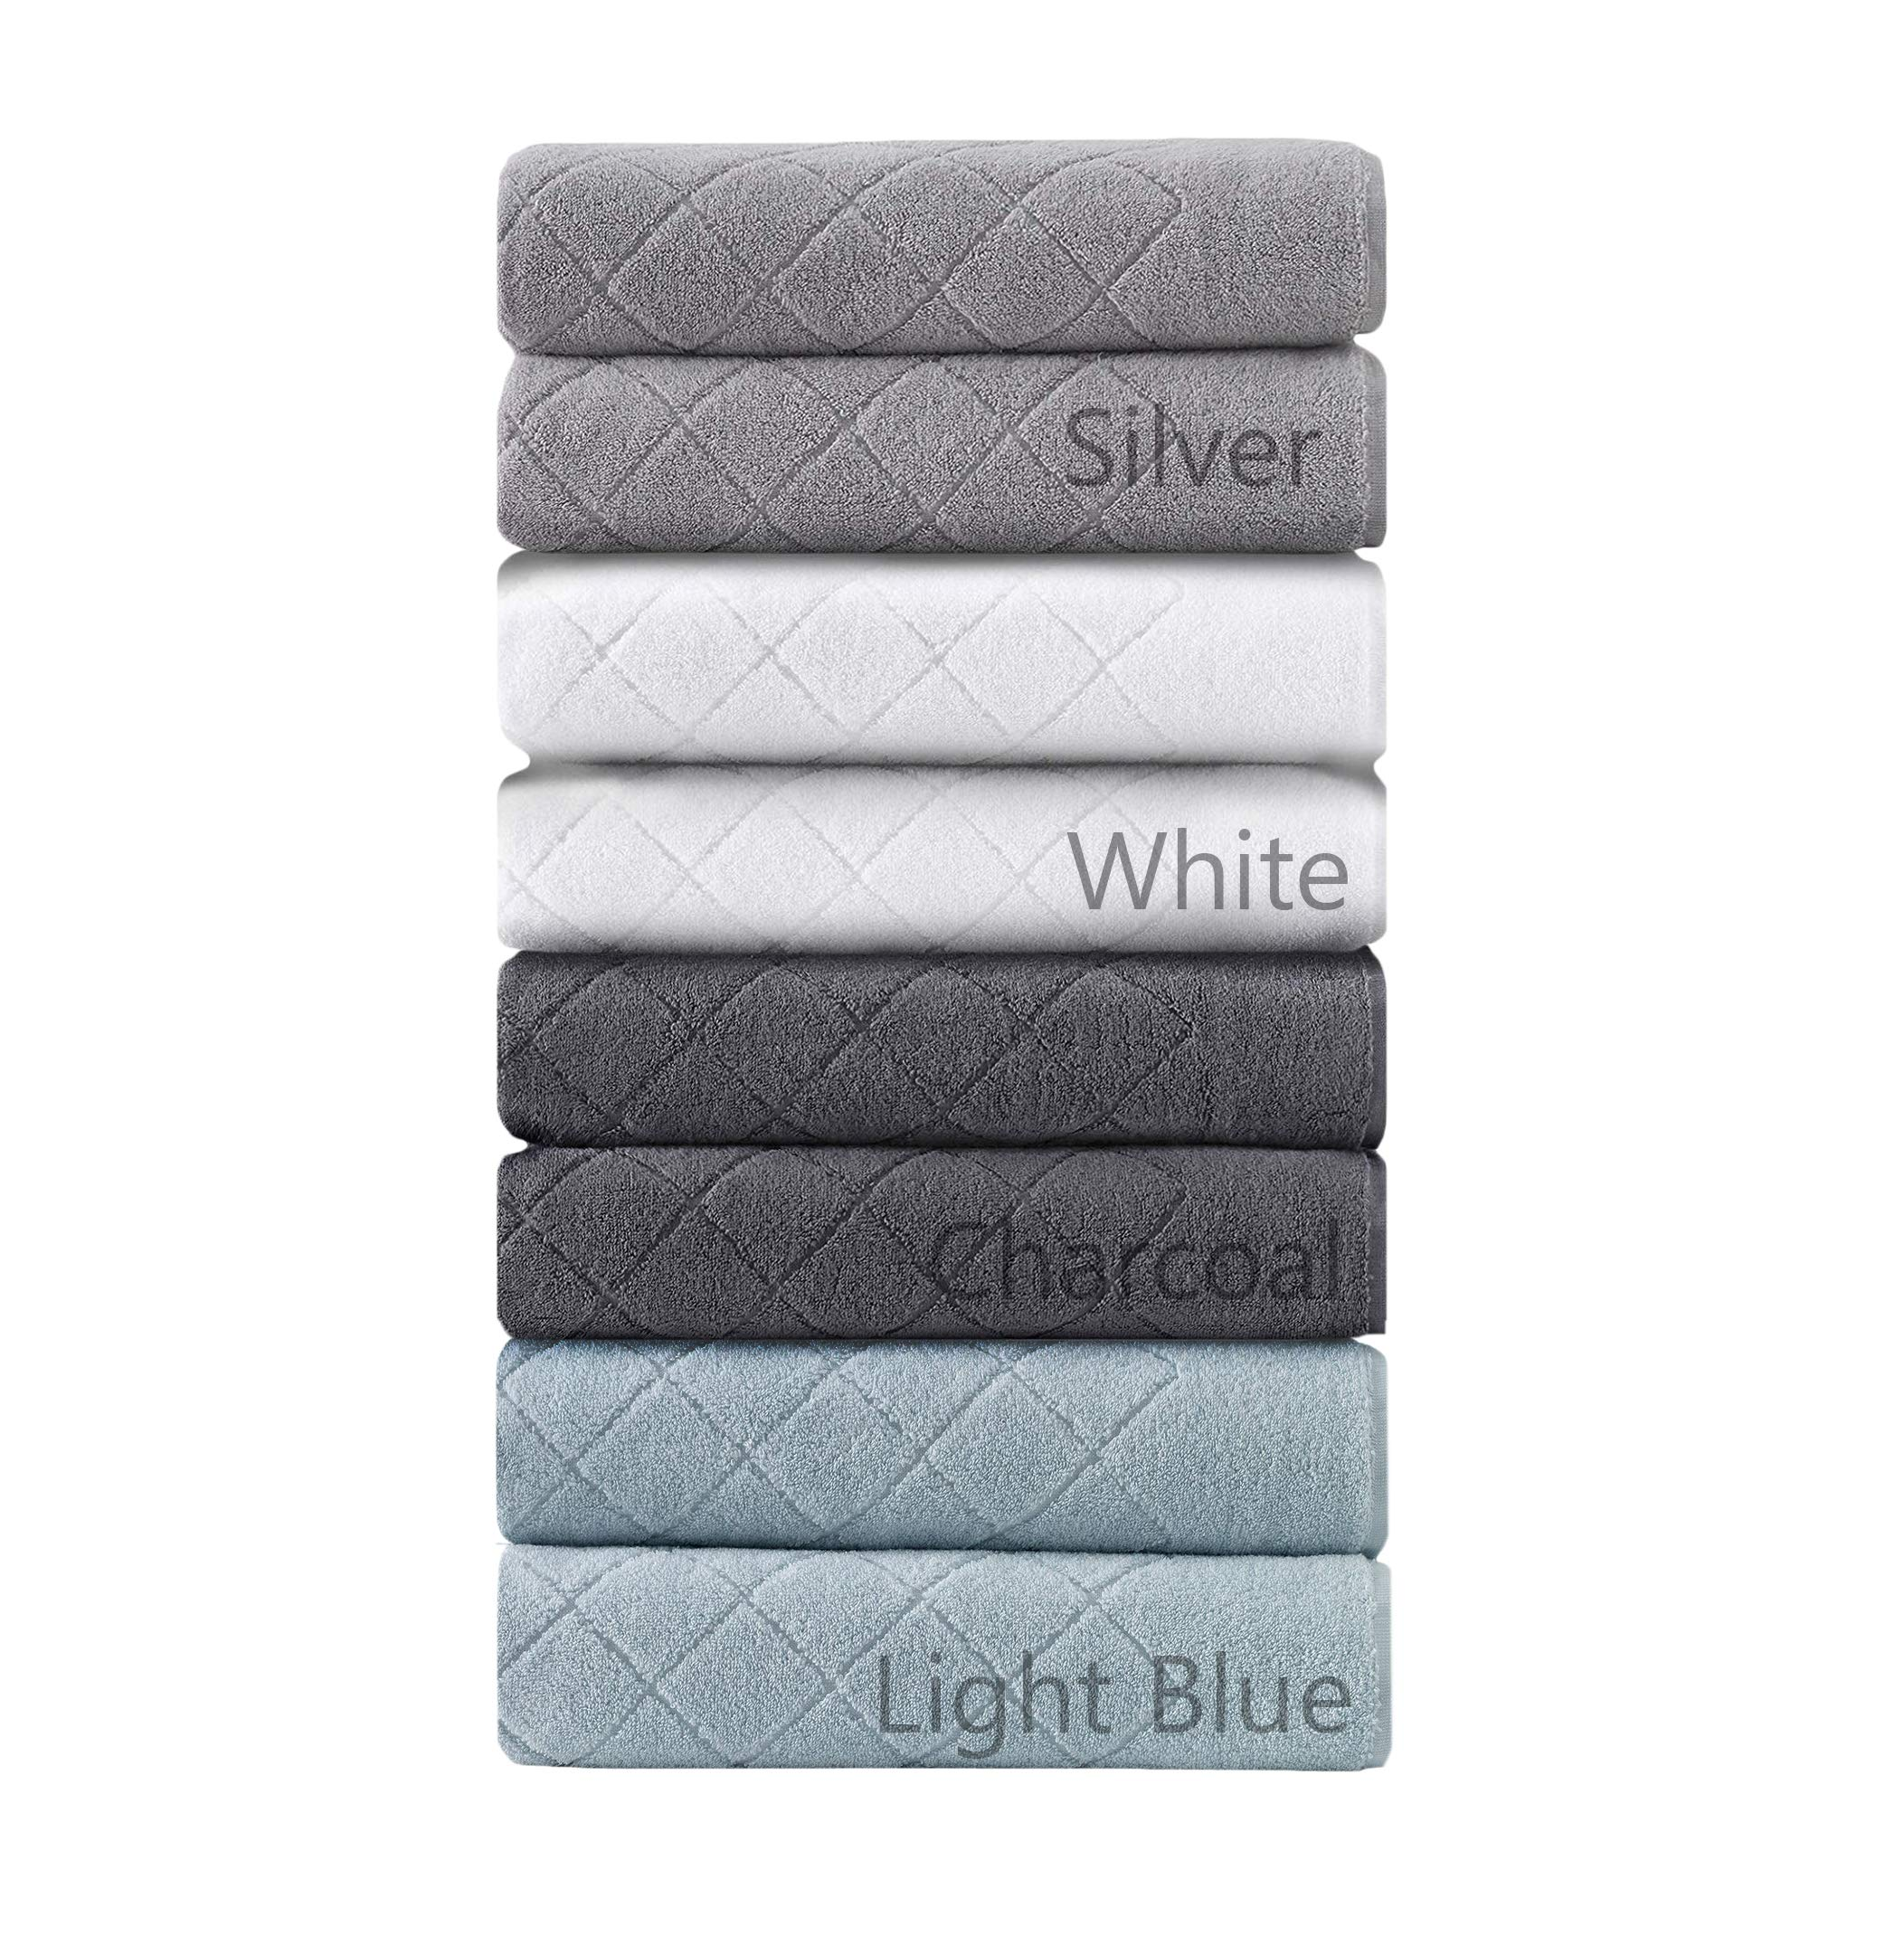 Enchante Home 2-Pack 100% Turkish Cotton Luxury Bath Sheet Towel Set for Home & Spa - Quality Soft & Absorbent - Jacquard Gracious Design (Charcoal Gray)